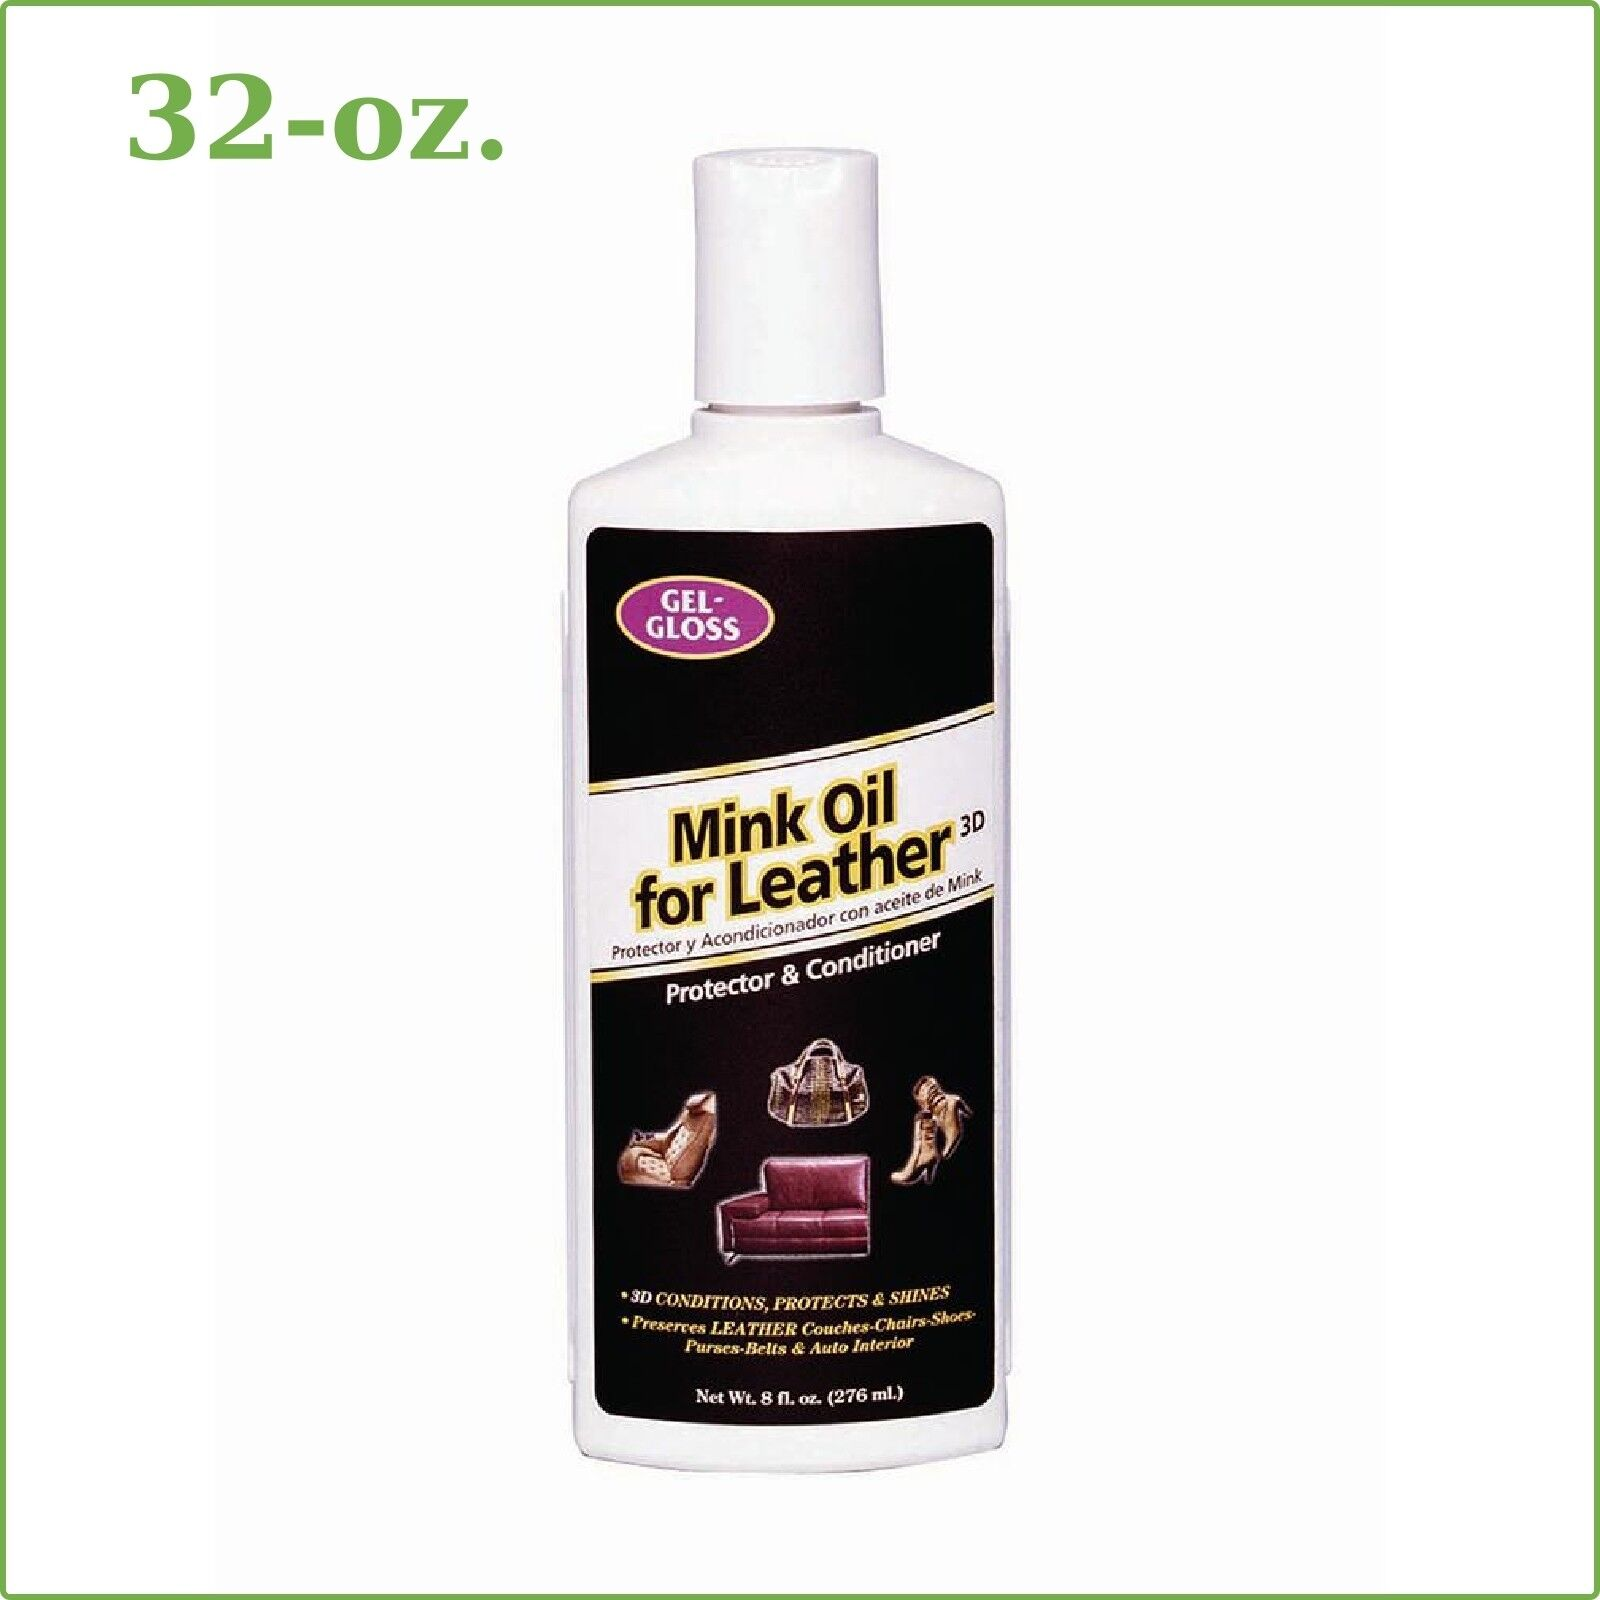 MINK OIL LEATHER PROTECTOR Gel Gloss Conditioner 8-oz. Couch